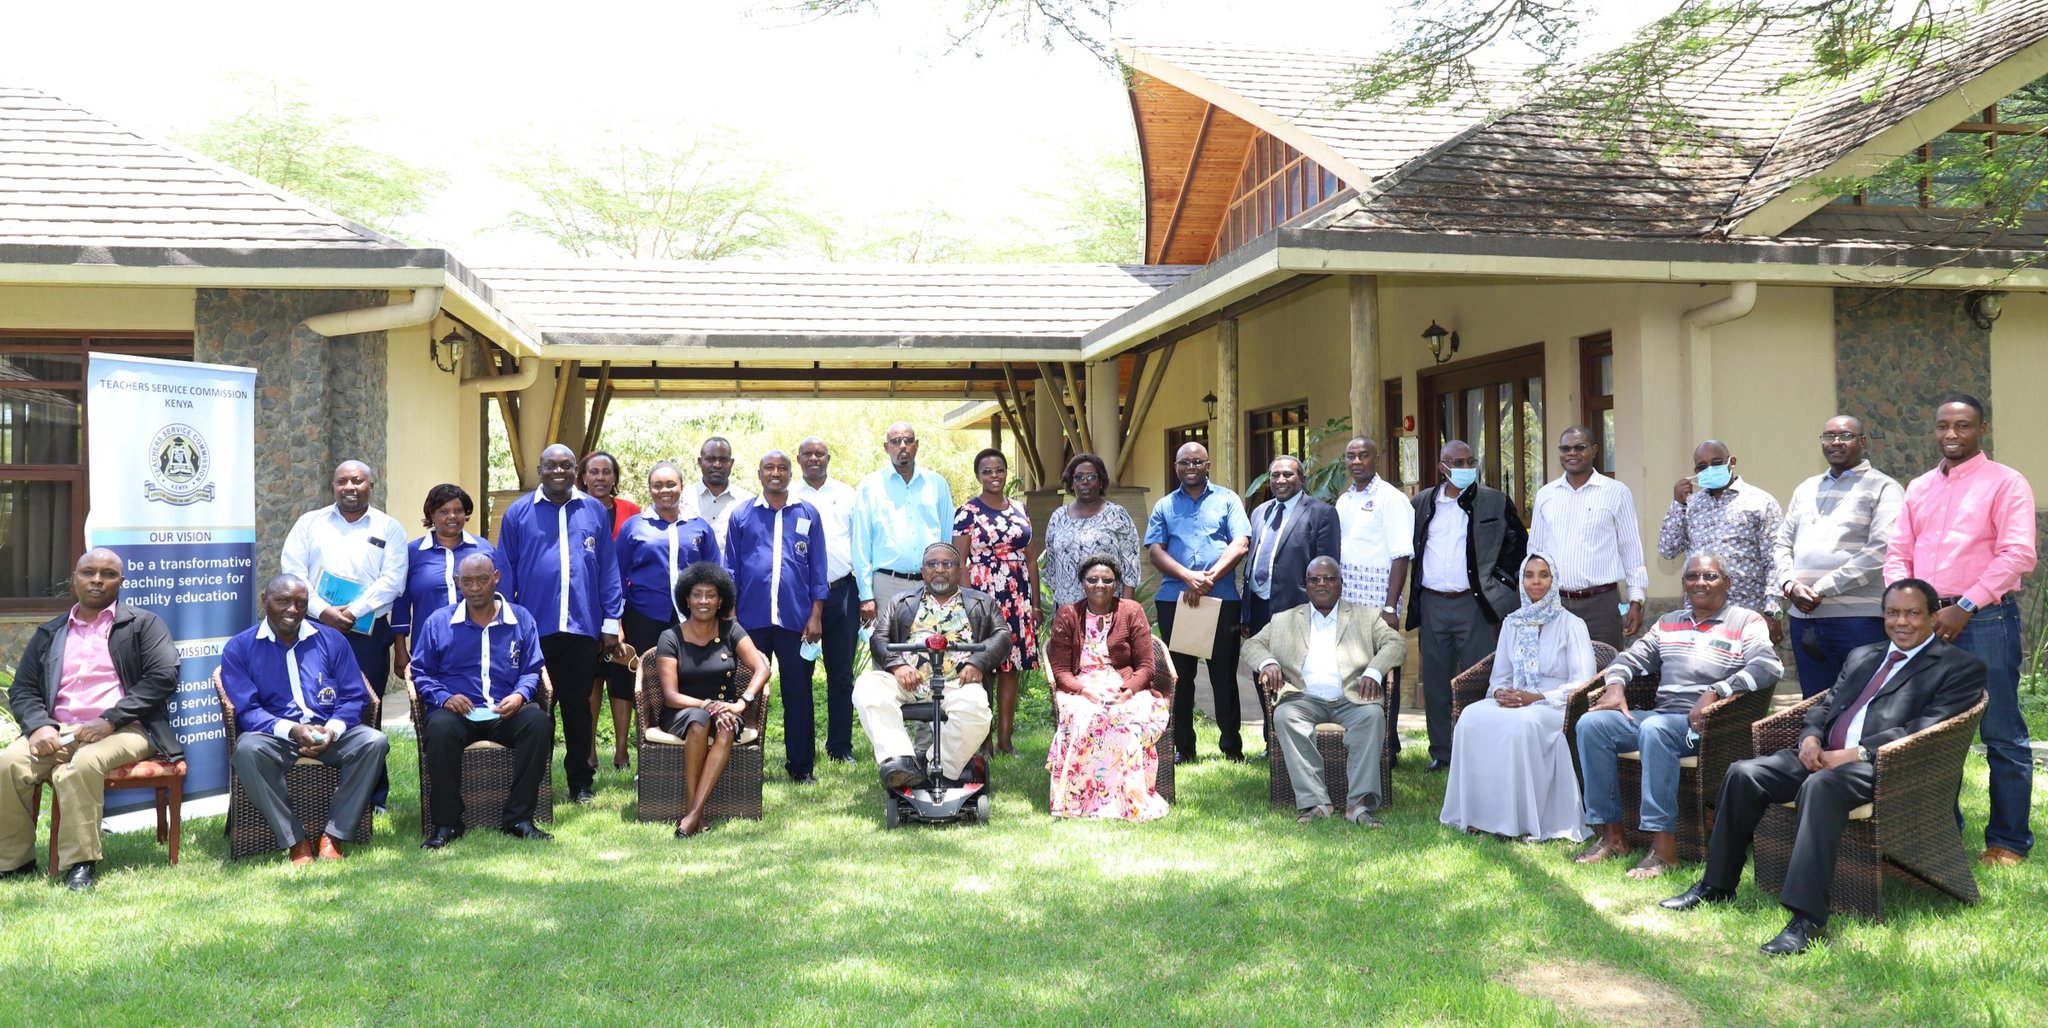 Officials of the Kenya Union of Special Needs Teachers (KUSNET) pose for a photo with TSC Board and Management after signing a recognition agreement with the Commission in Naivasha on 03/03/2021. Kusnet will now tussle for membership with both Kuppet and Knut.